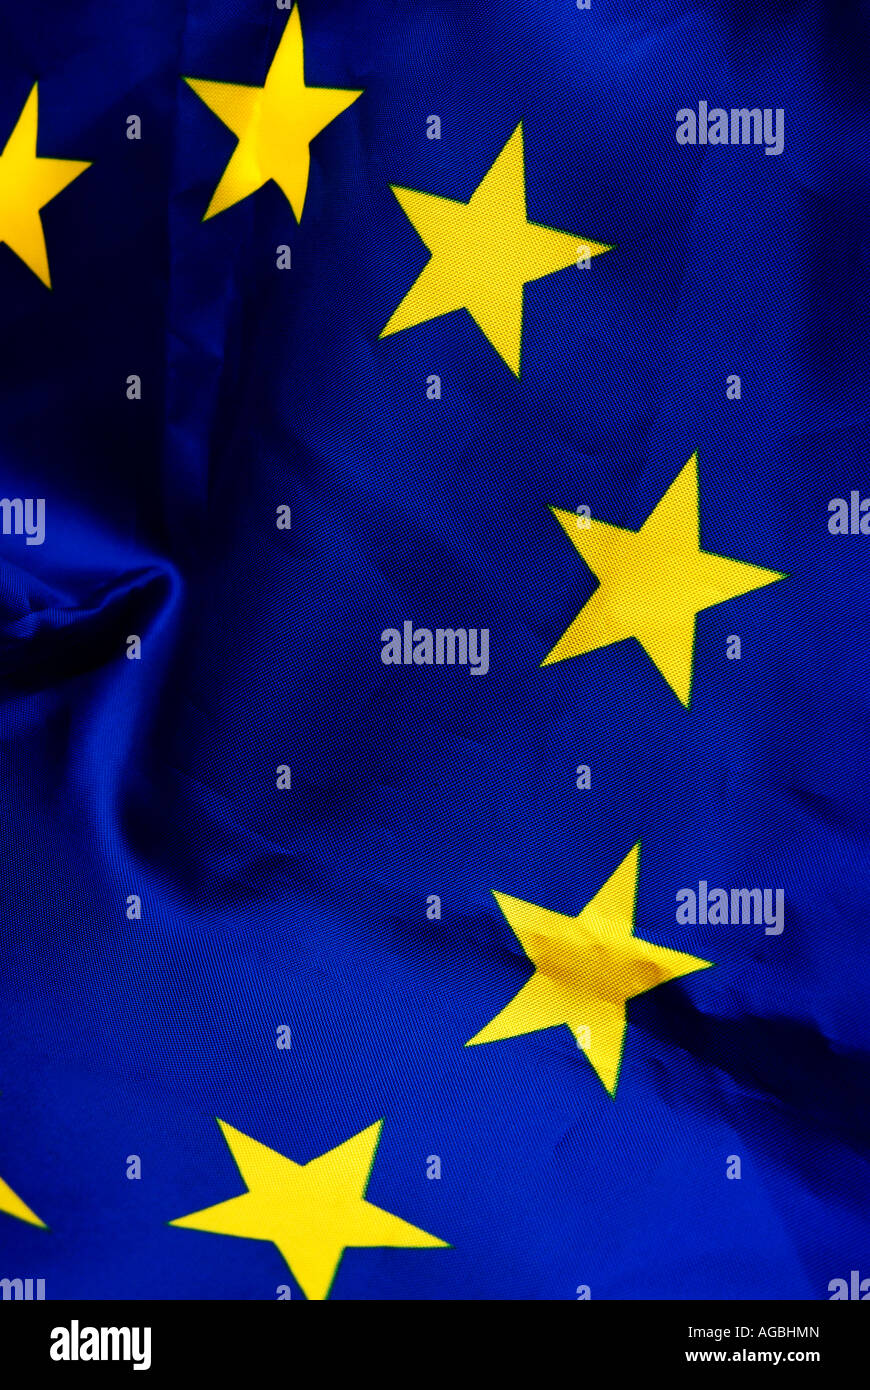 European Union flag close up - Stock Image